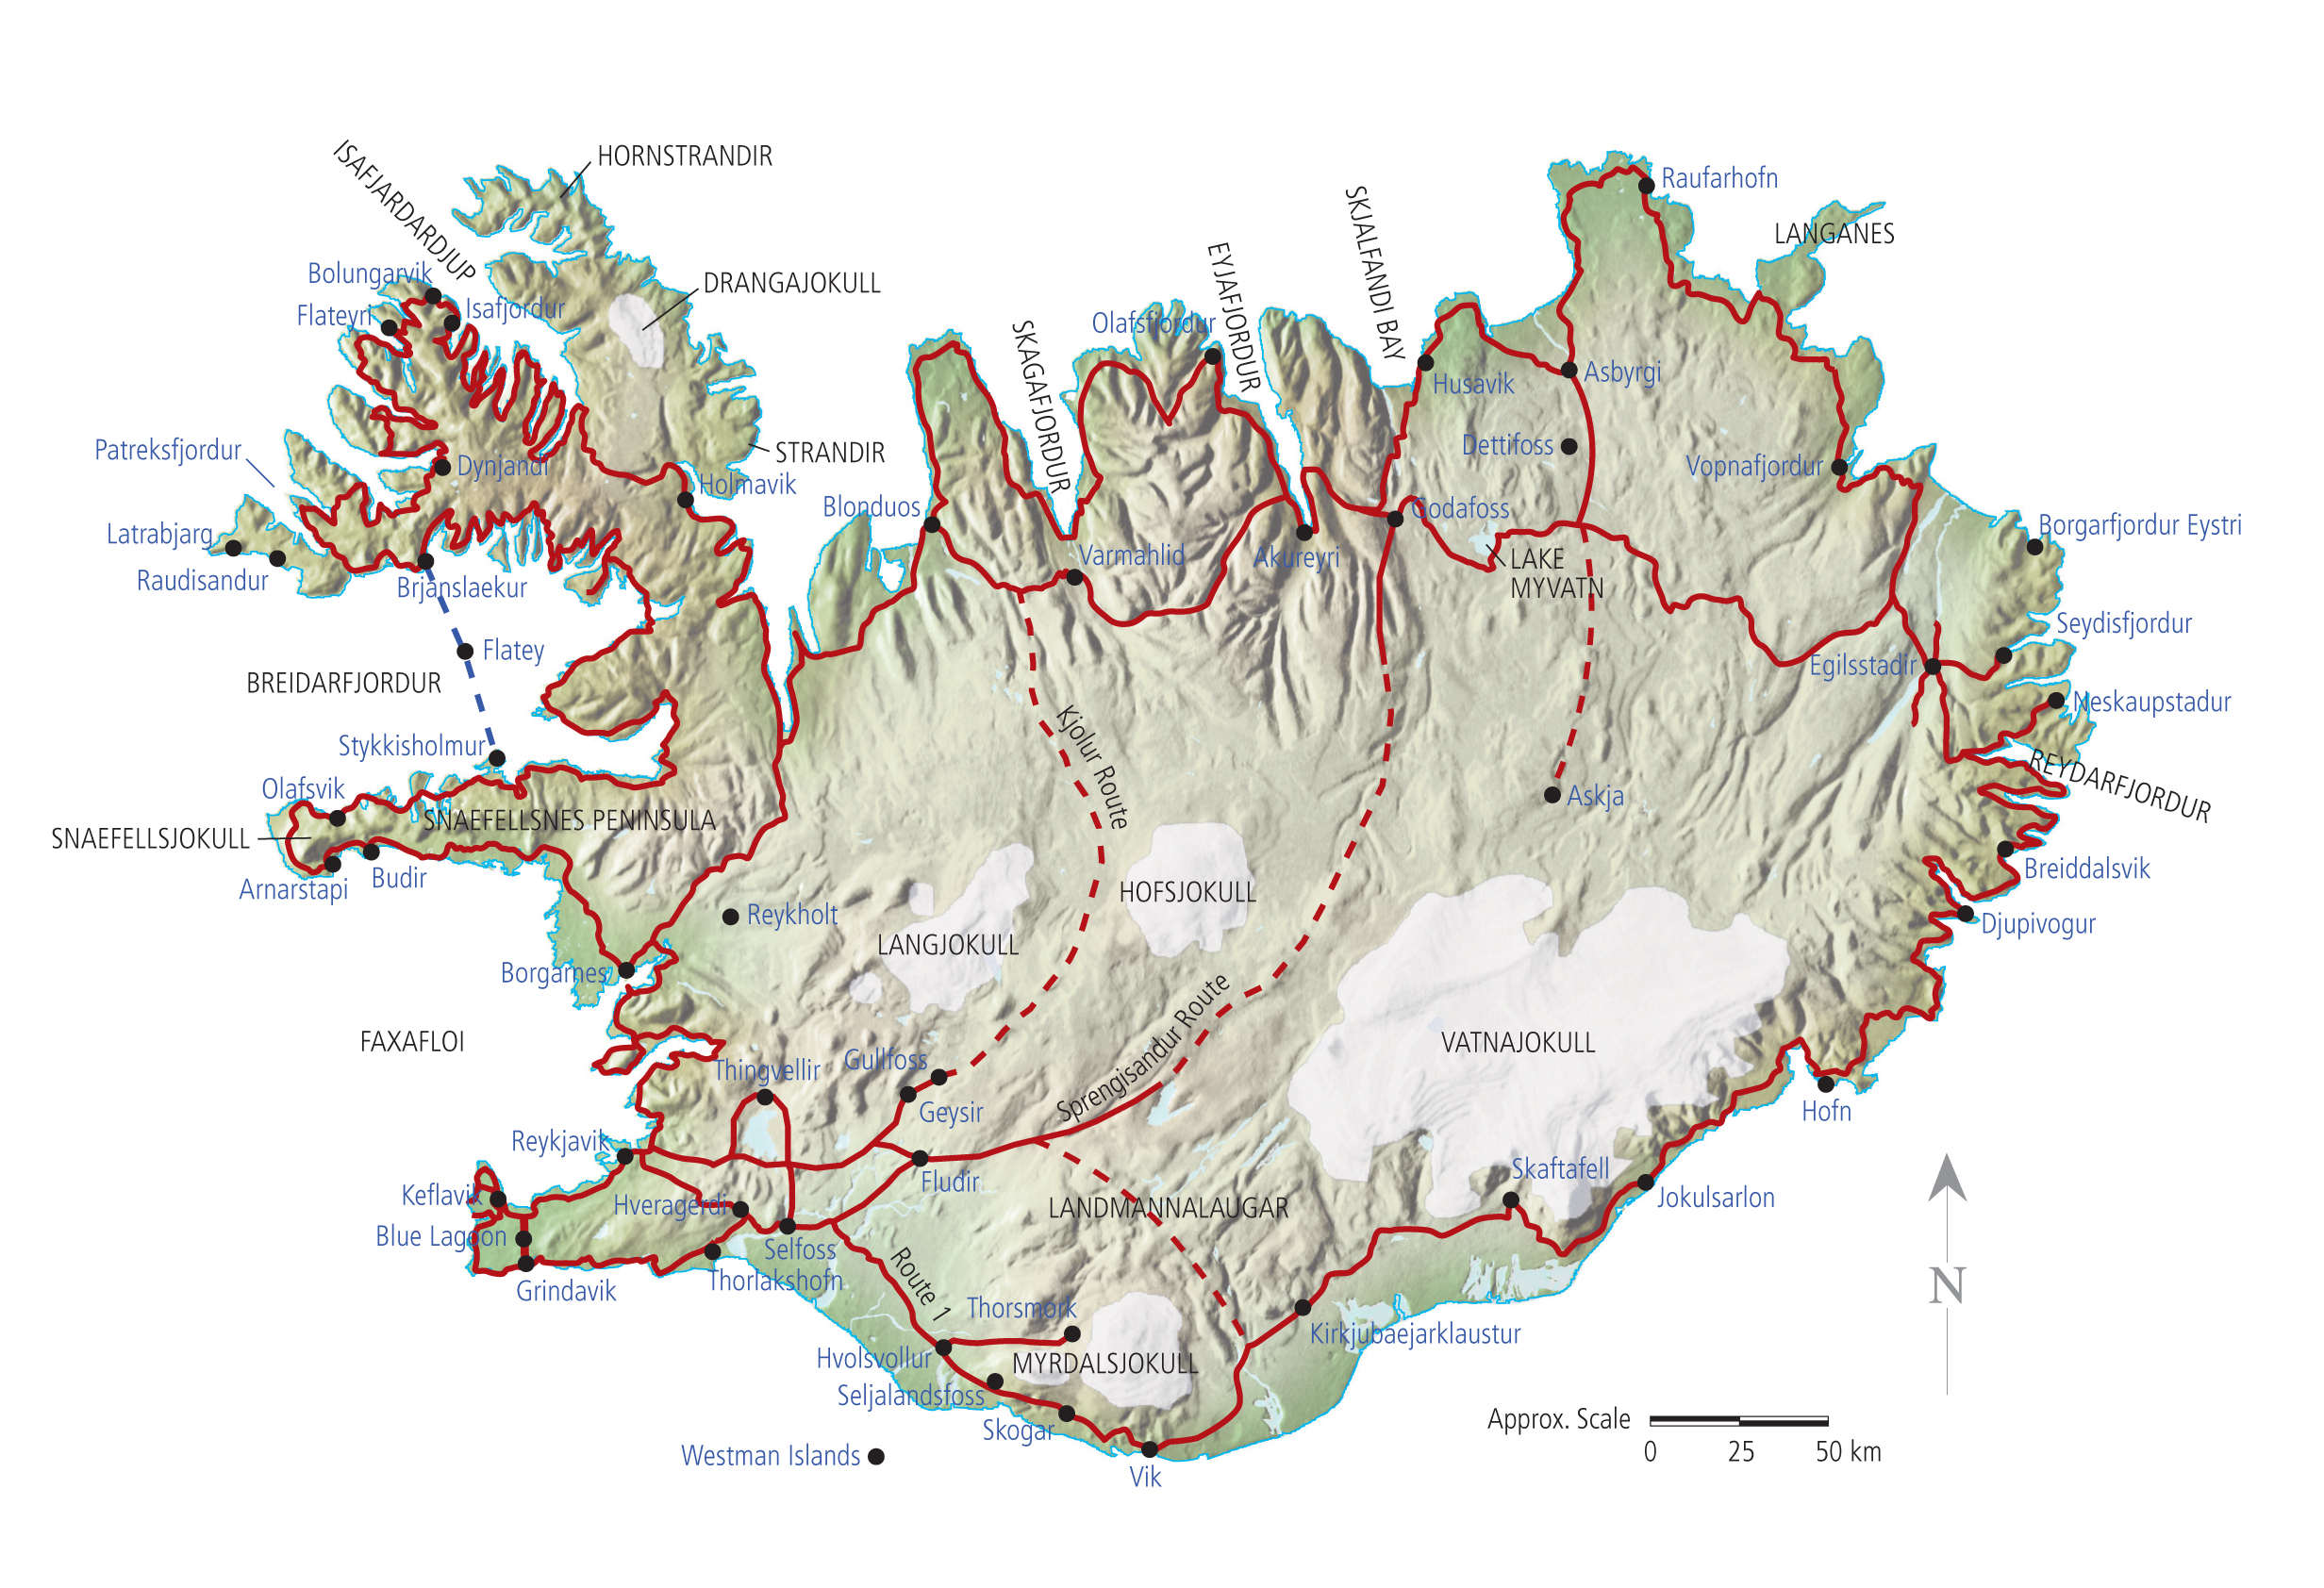 http://www.mappery.com/maps/Iceland-Tourist-Map-2.jpg